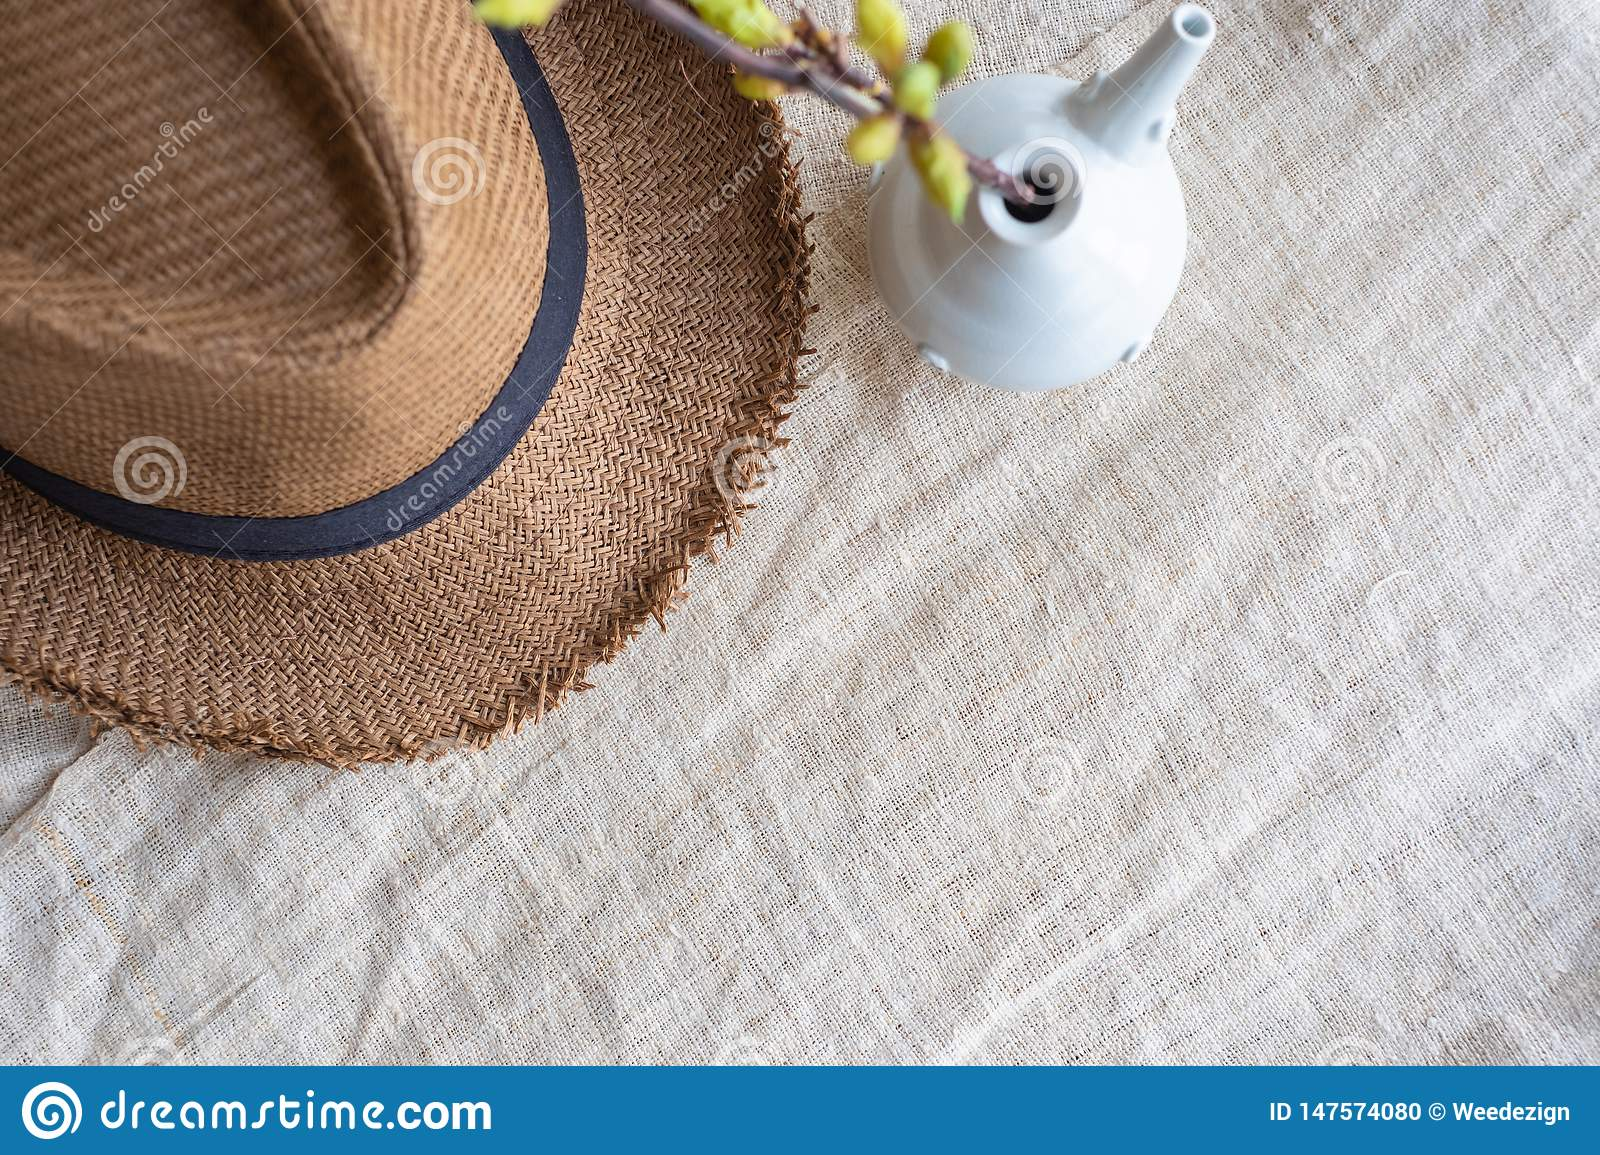 Top view of Summer brown panama straw hat with flower plant in vase on linen cloth.travel concept.copy space for adding text